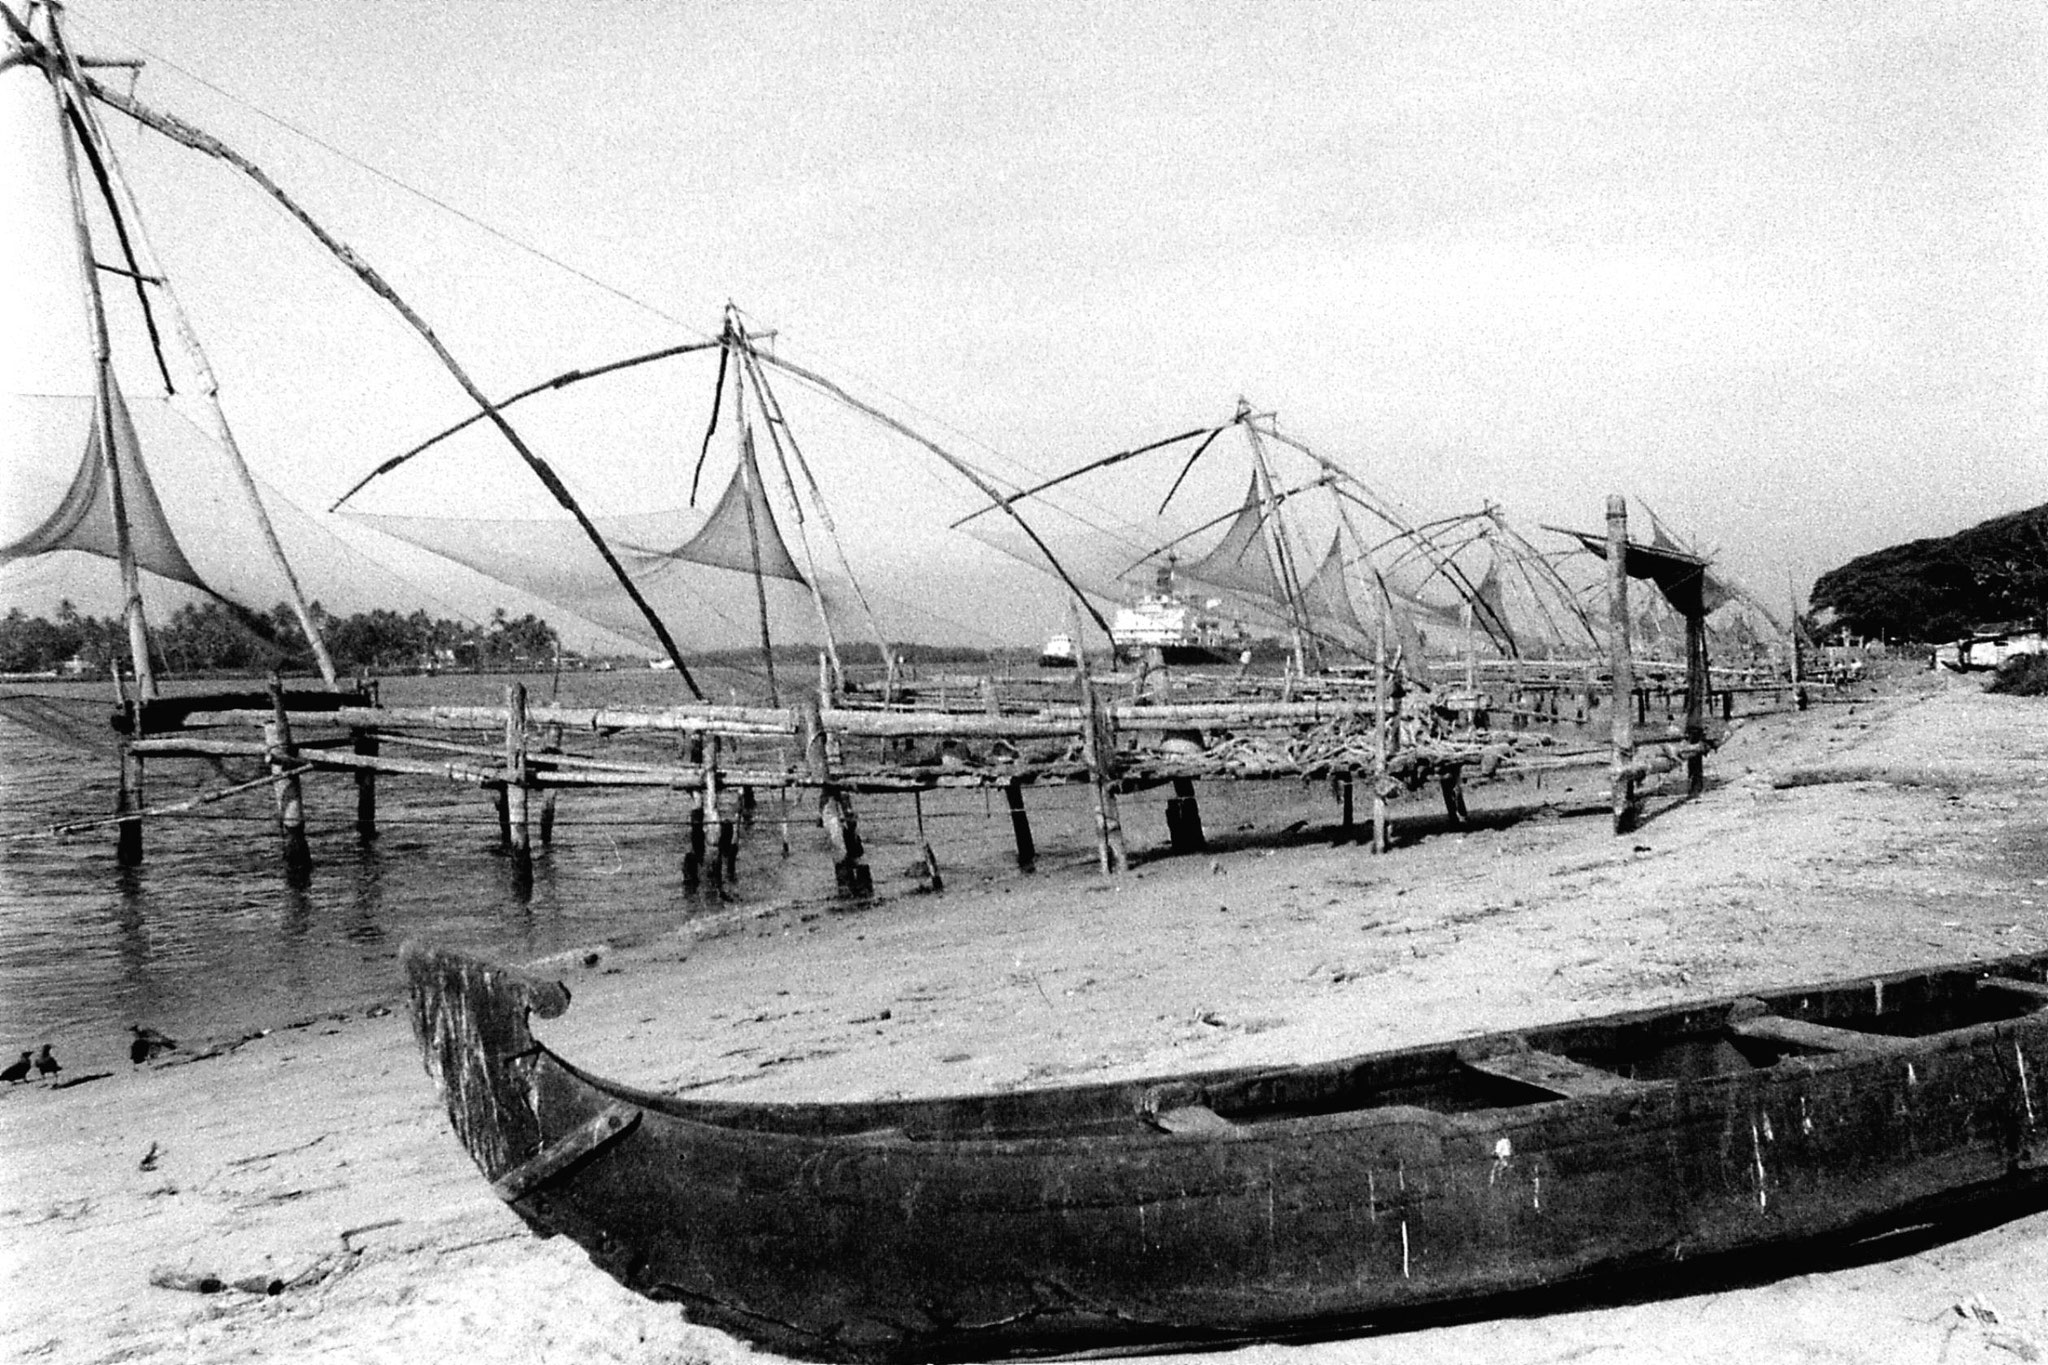 25/2/90: 7: Cochin dolphins and views of Fort Cochin